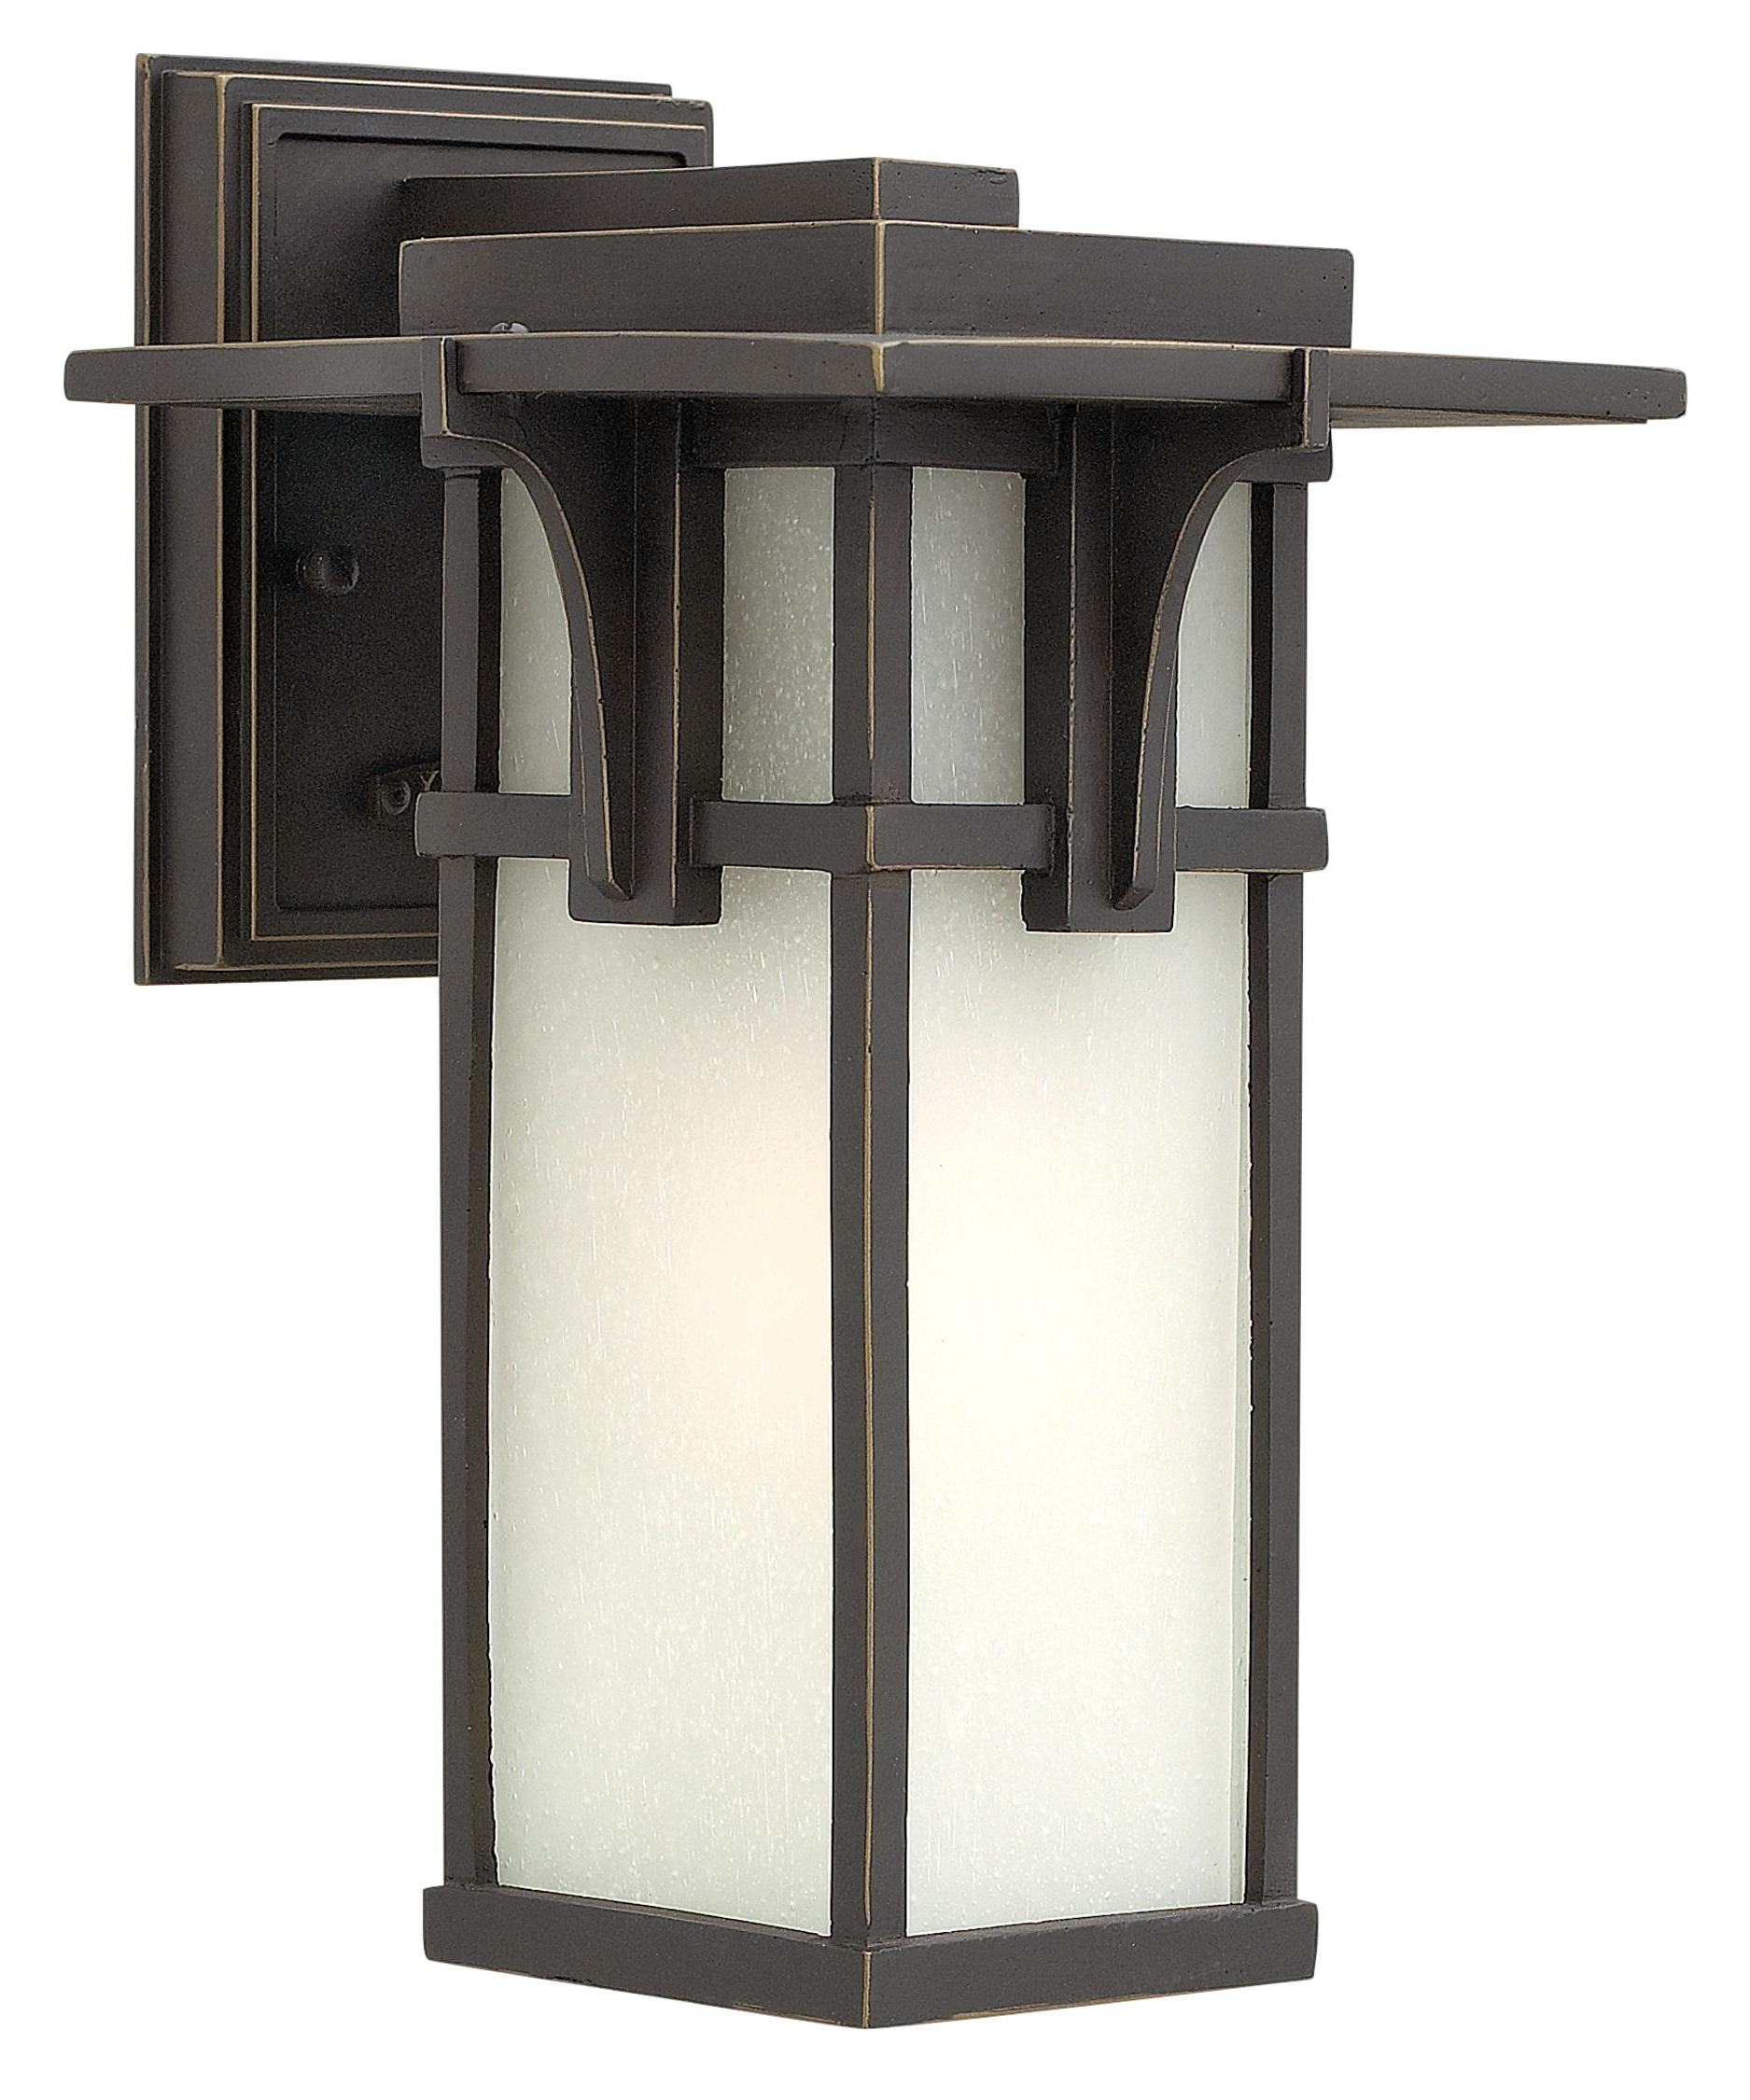 Popular Extra Large Wall Mount Porch Hinkley Lighting With Hinkley Lighting 2230 Manhattan 7 Inch Wide 1 Light Outdoor Wall (View 17 of 20)